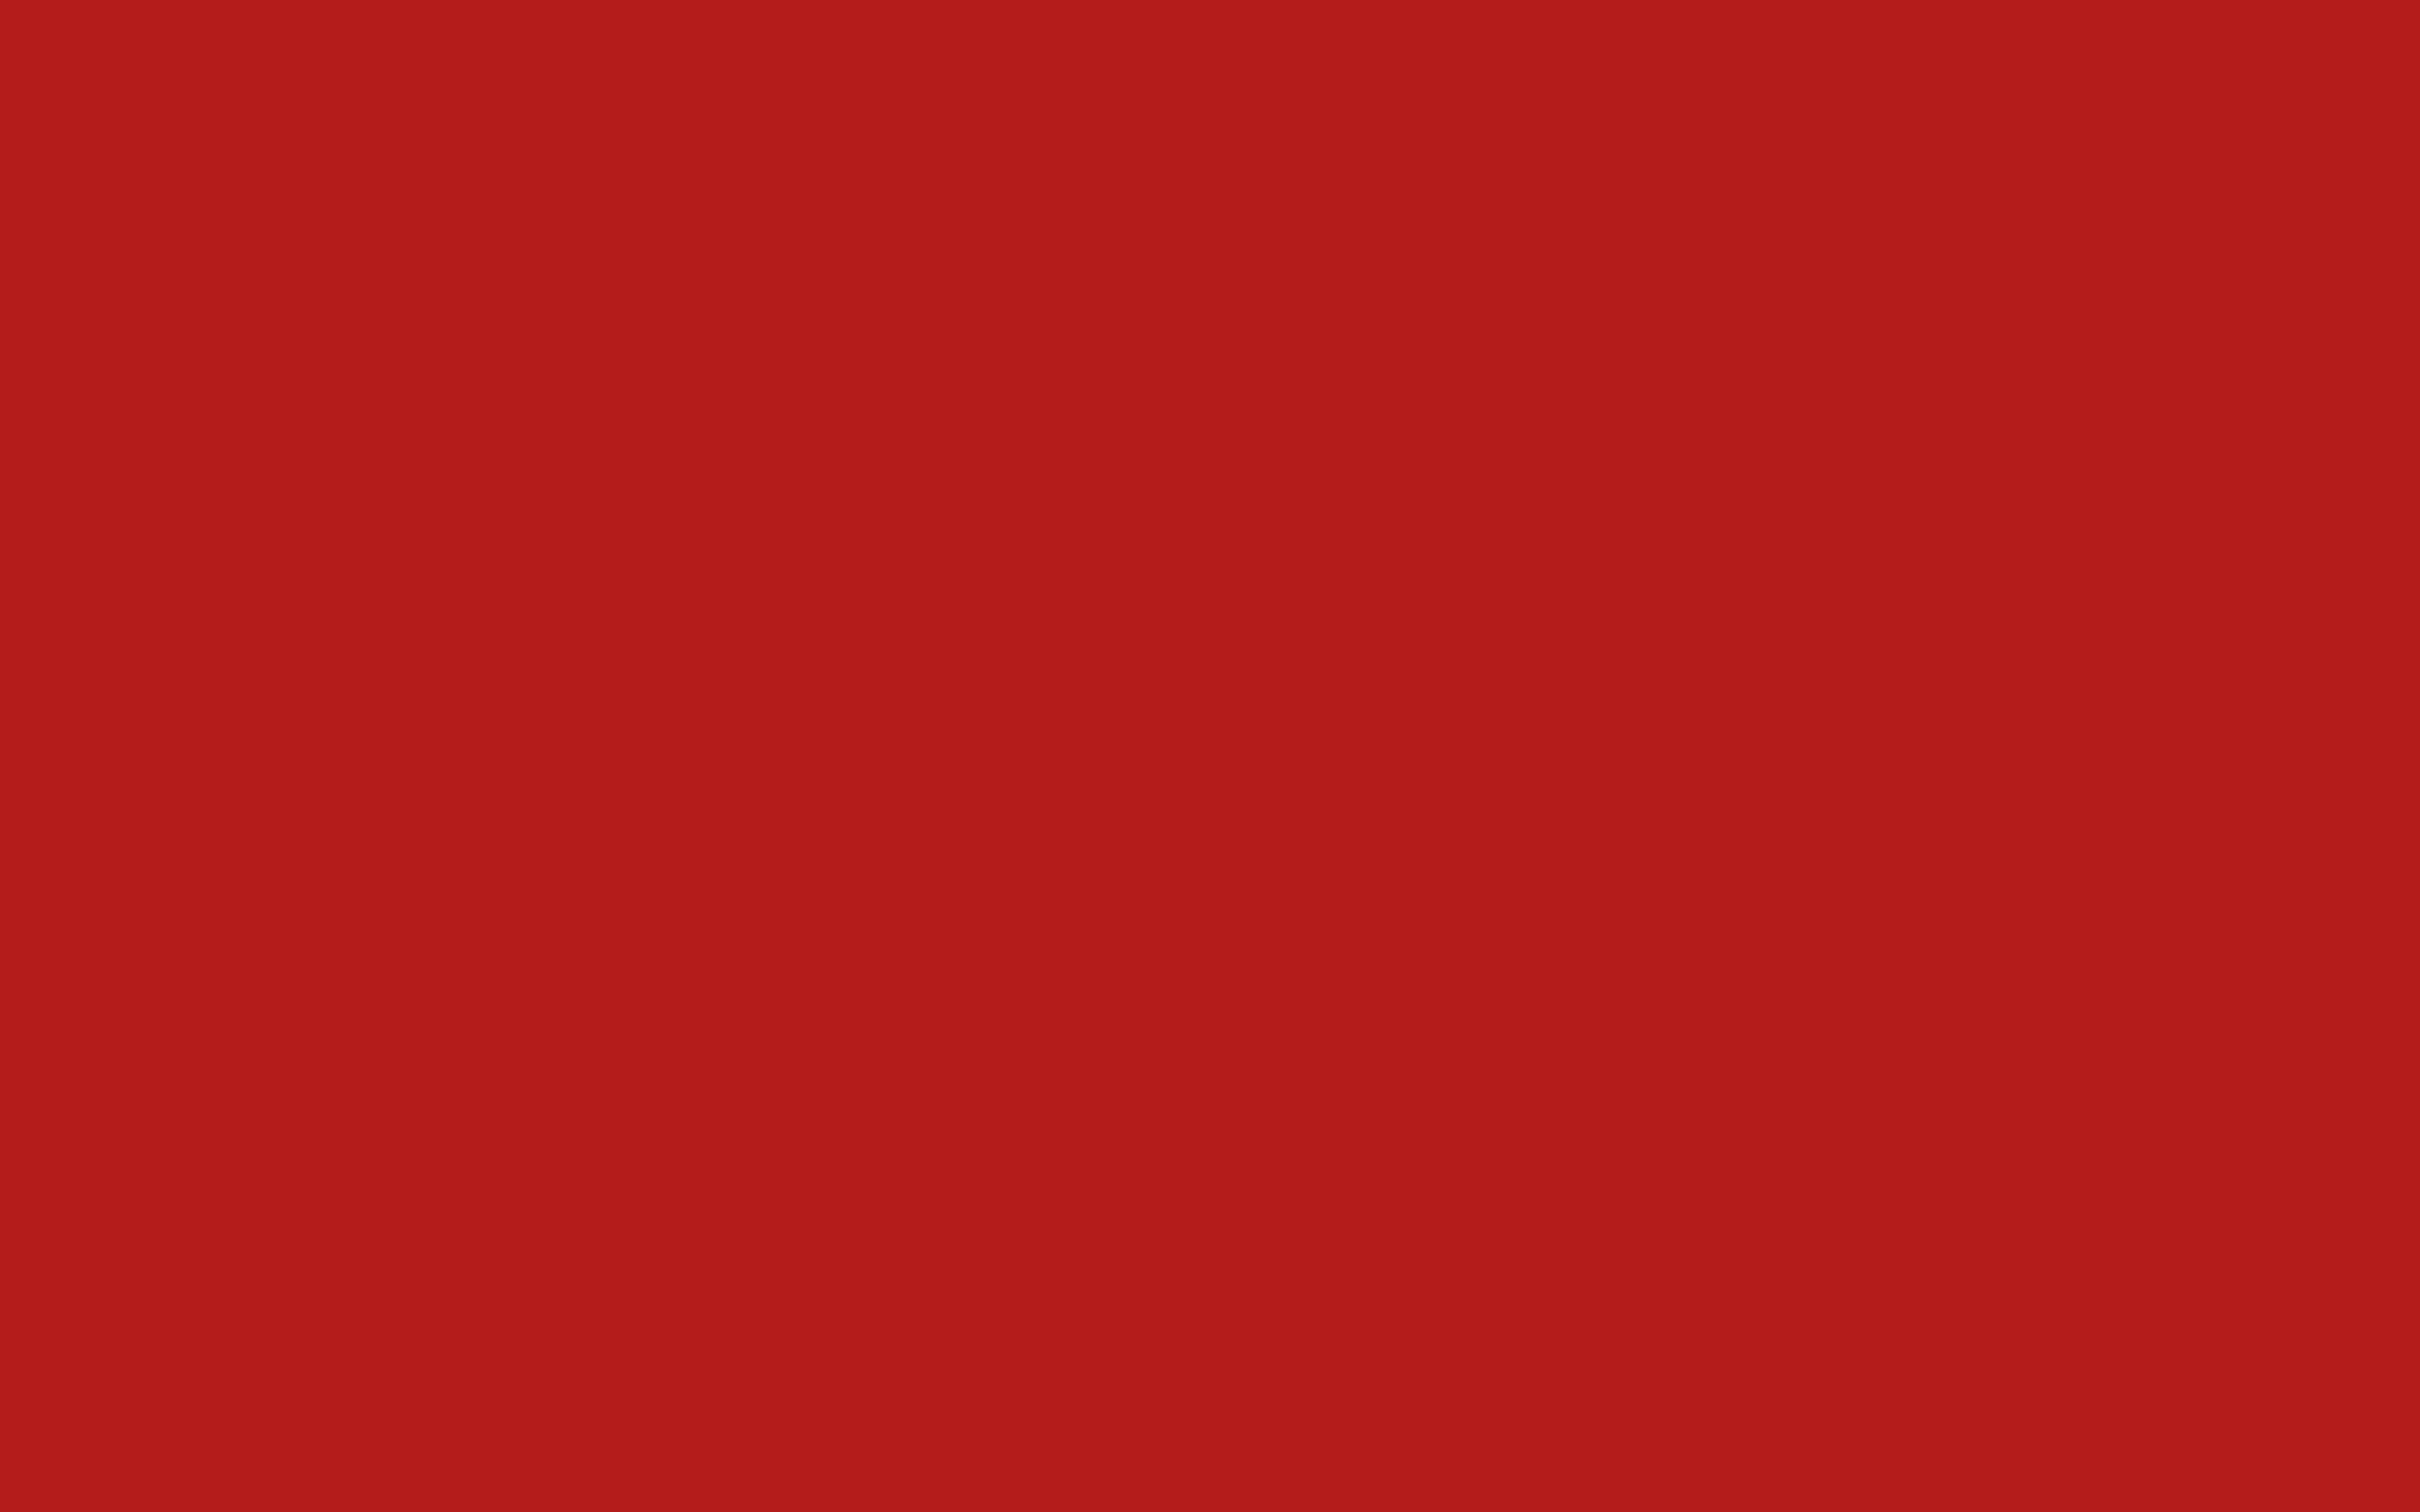 2560x1600 Cornell Red Solid Color Background